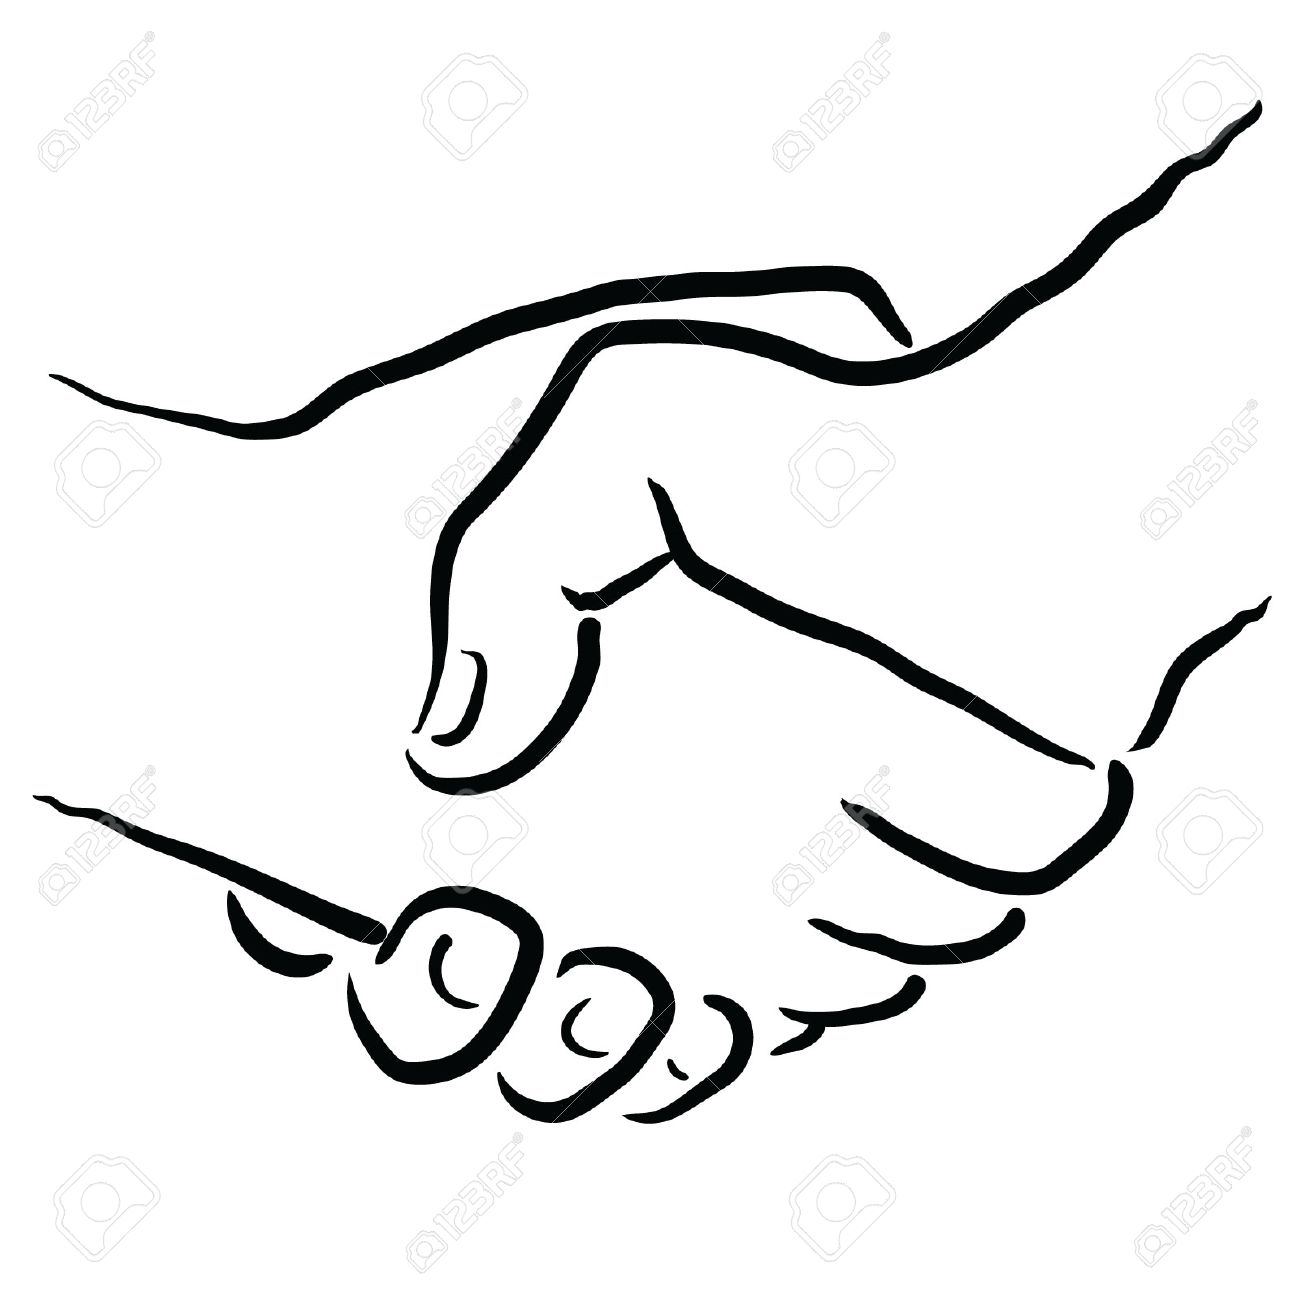 1300x1300 Shake Hands Royalty Free Cliparts, Vectors, And Stock Illustration